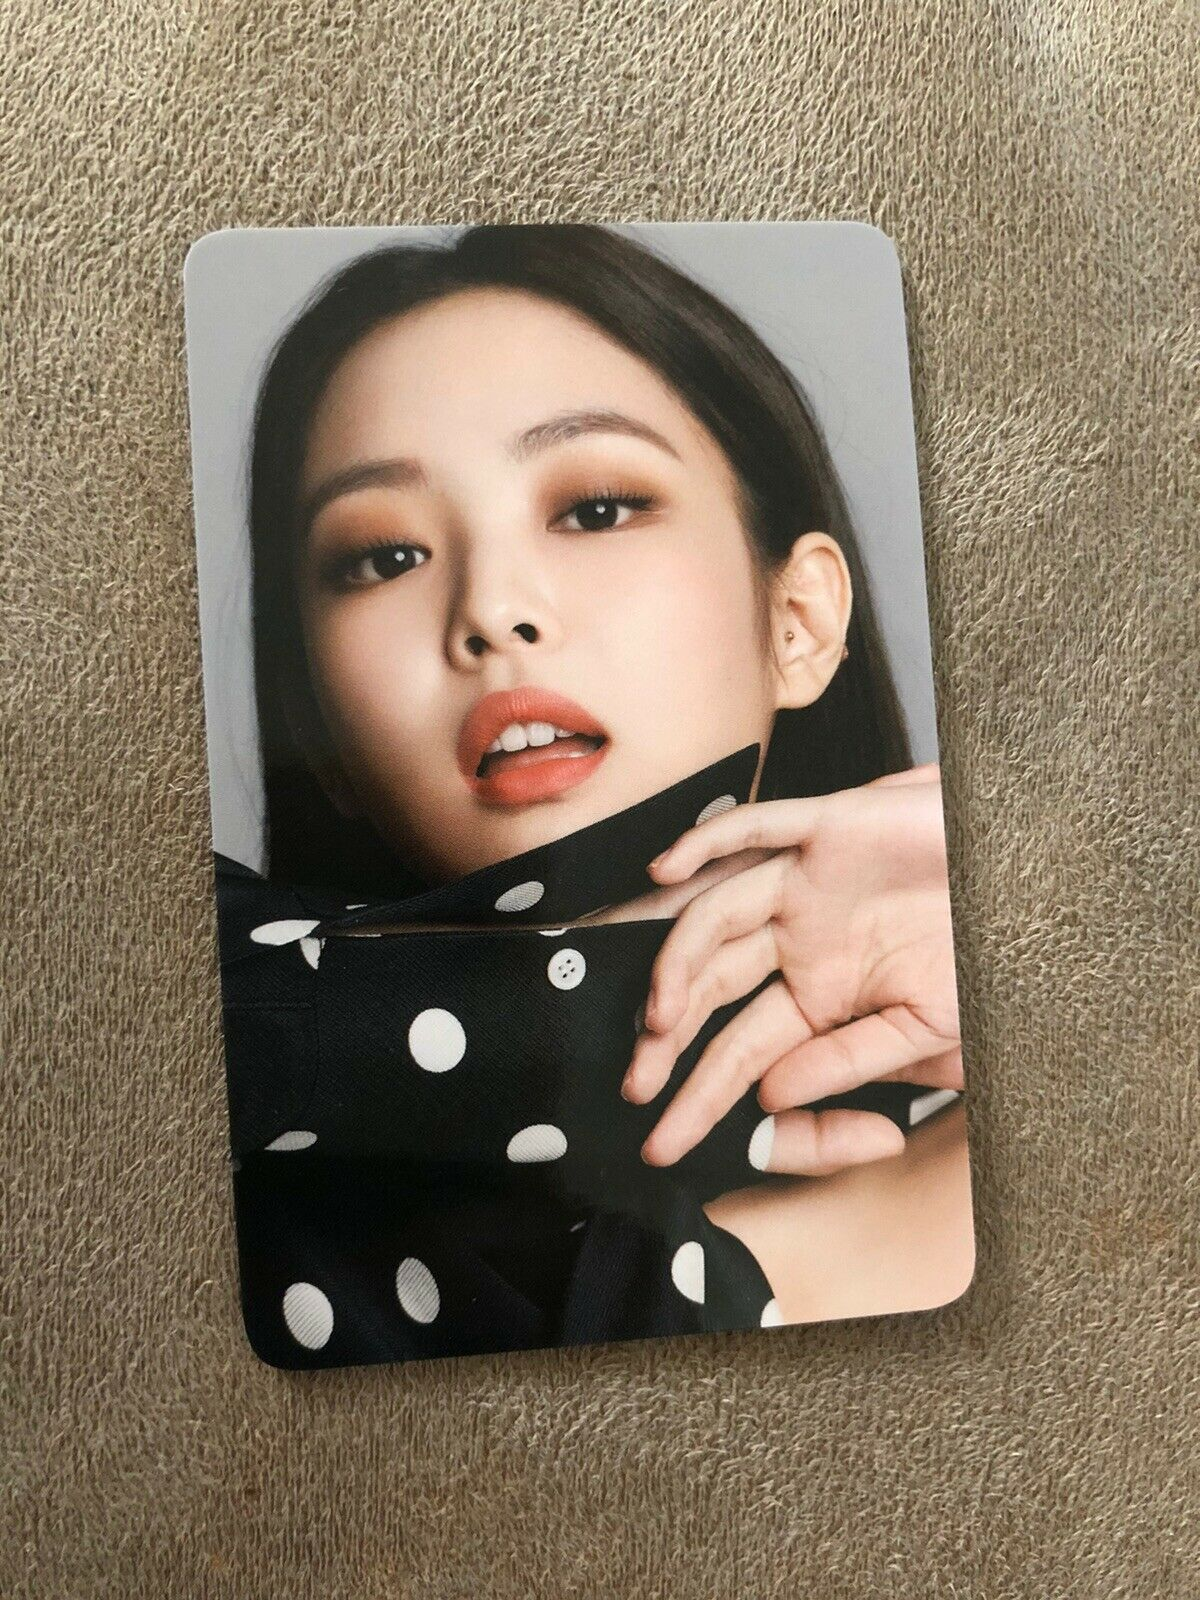 mostexpensivephotocards_17